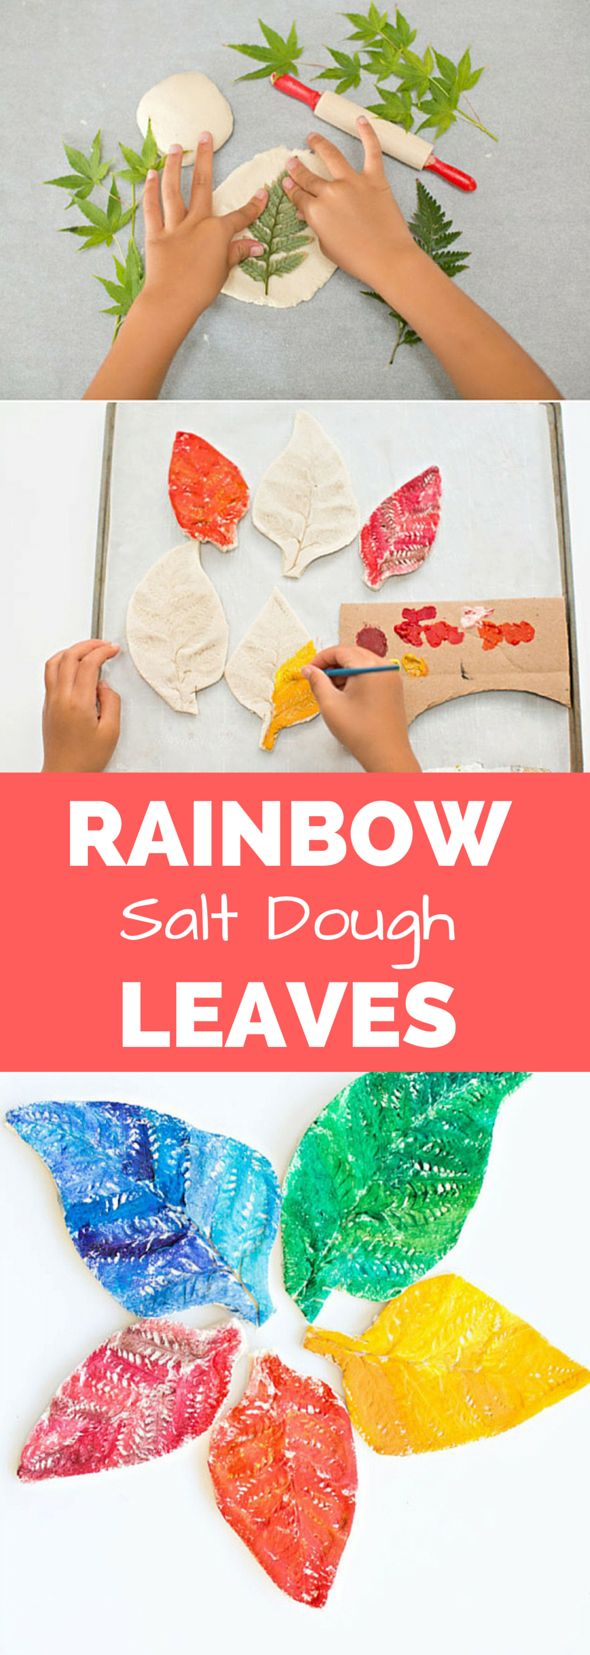 Watercolor Rainbow Salt Dough Leaves. A beautiful nature inspired activity for kids.